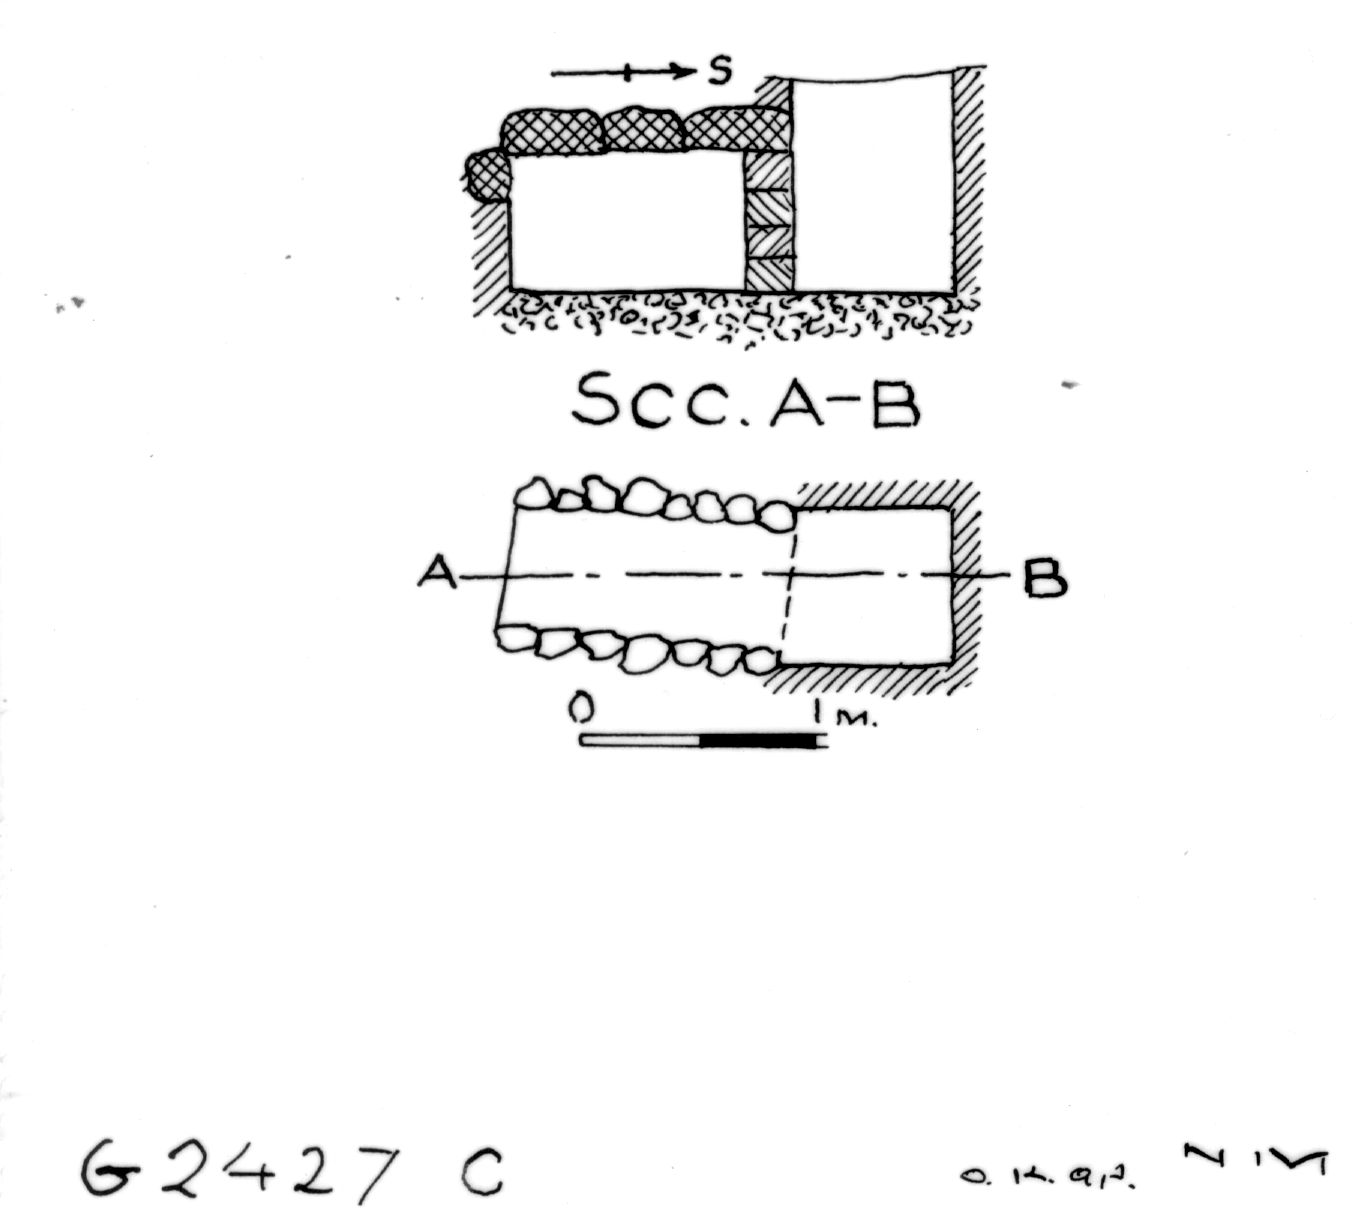 Maps and plans: G 2427, Shaft C